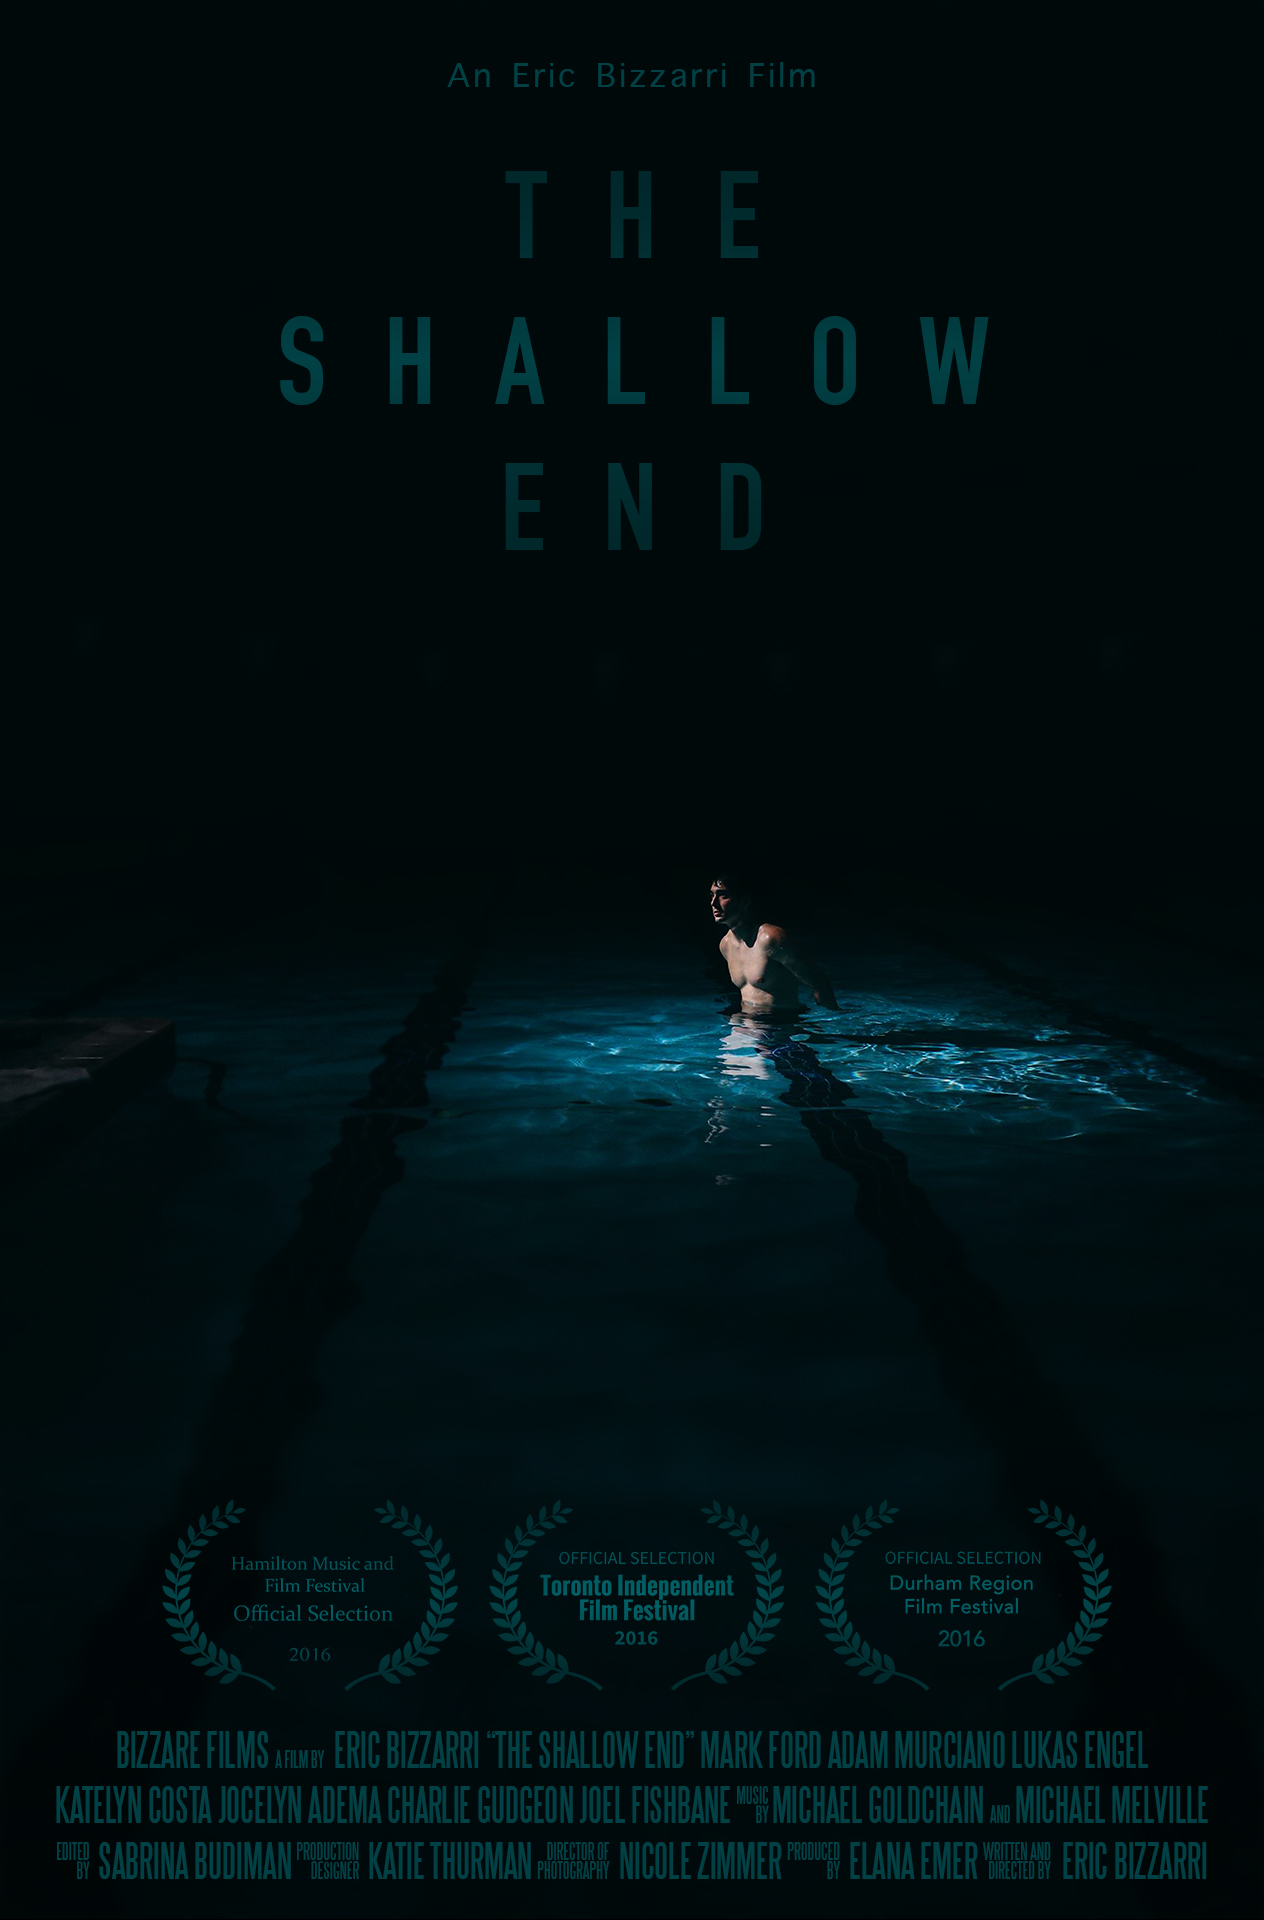 The Shallow End Poster